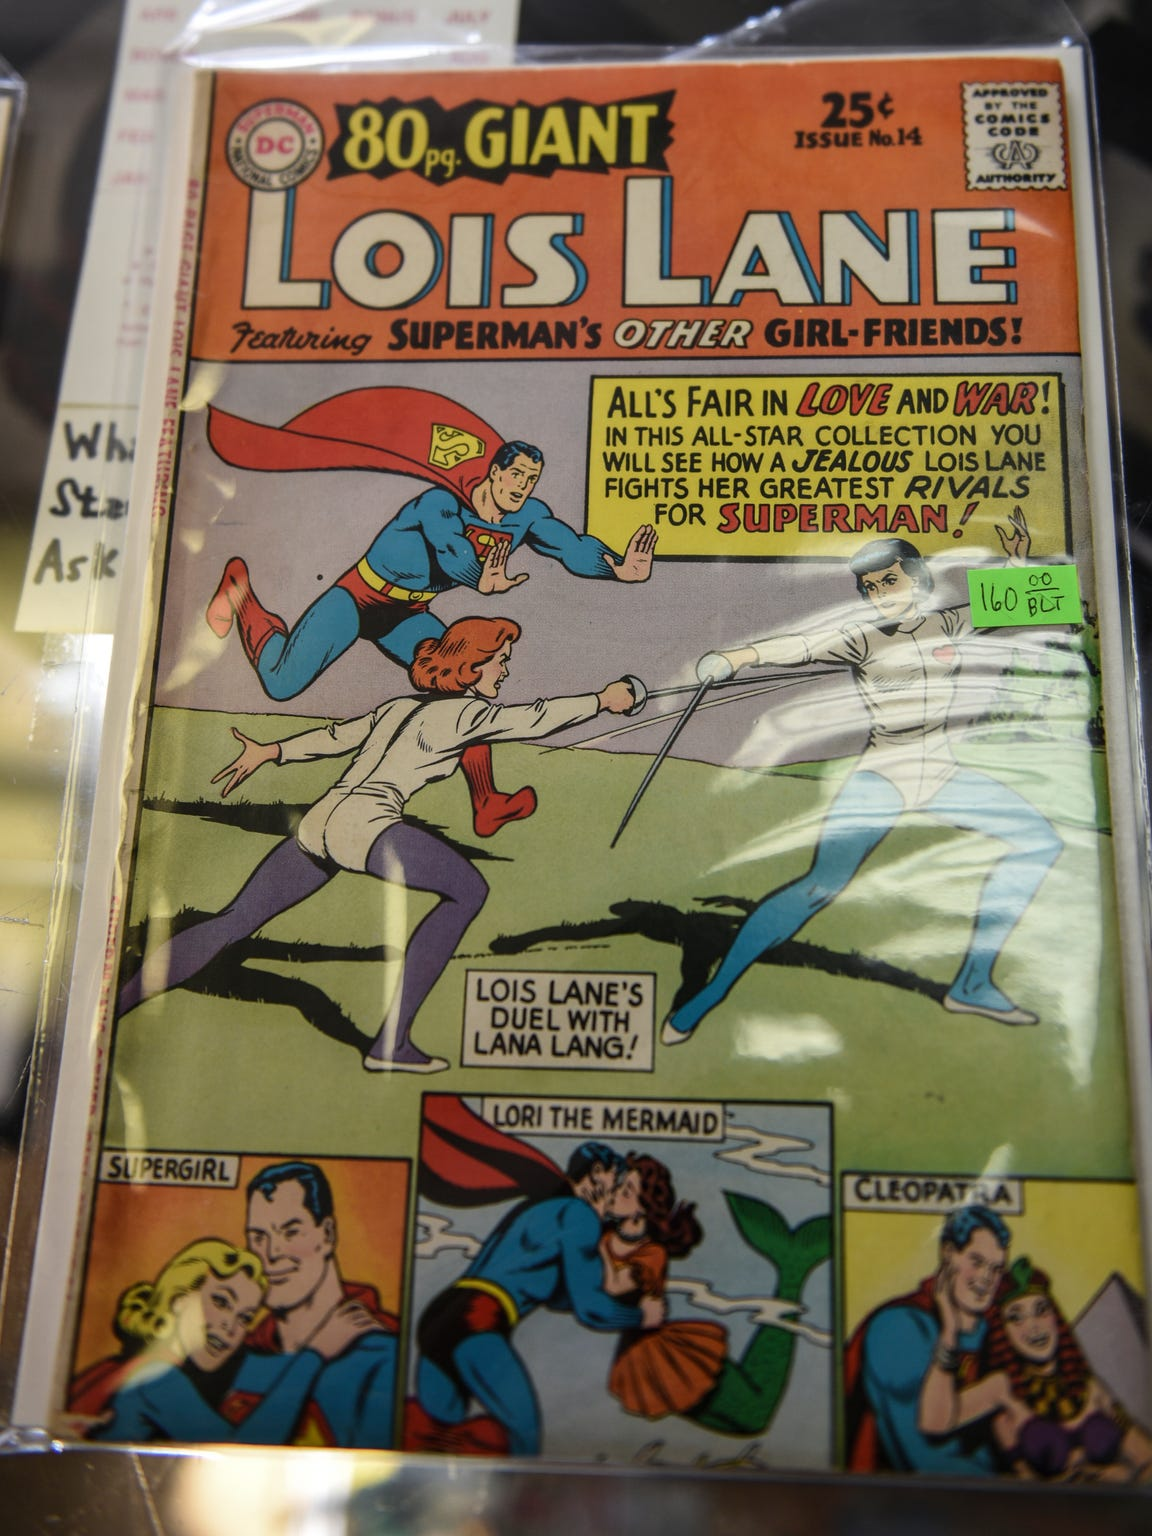 A giant comic book of Lois Lane at Comics and Paperbacks Plus in Palmyra.